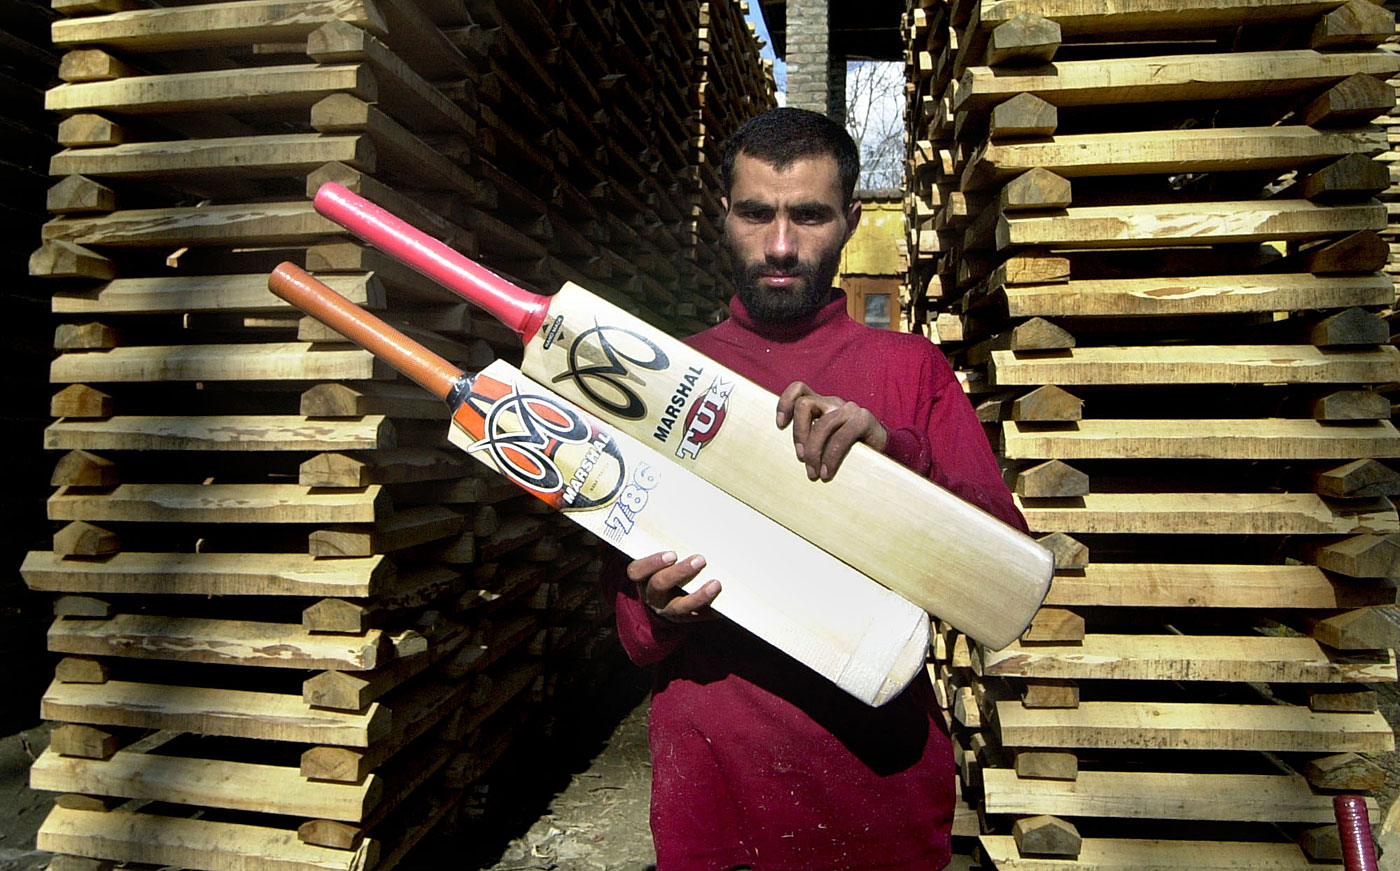 A worker holds two cricket bats at a bat-making factory in Awantipora